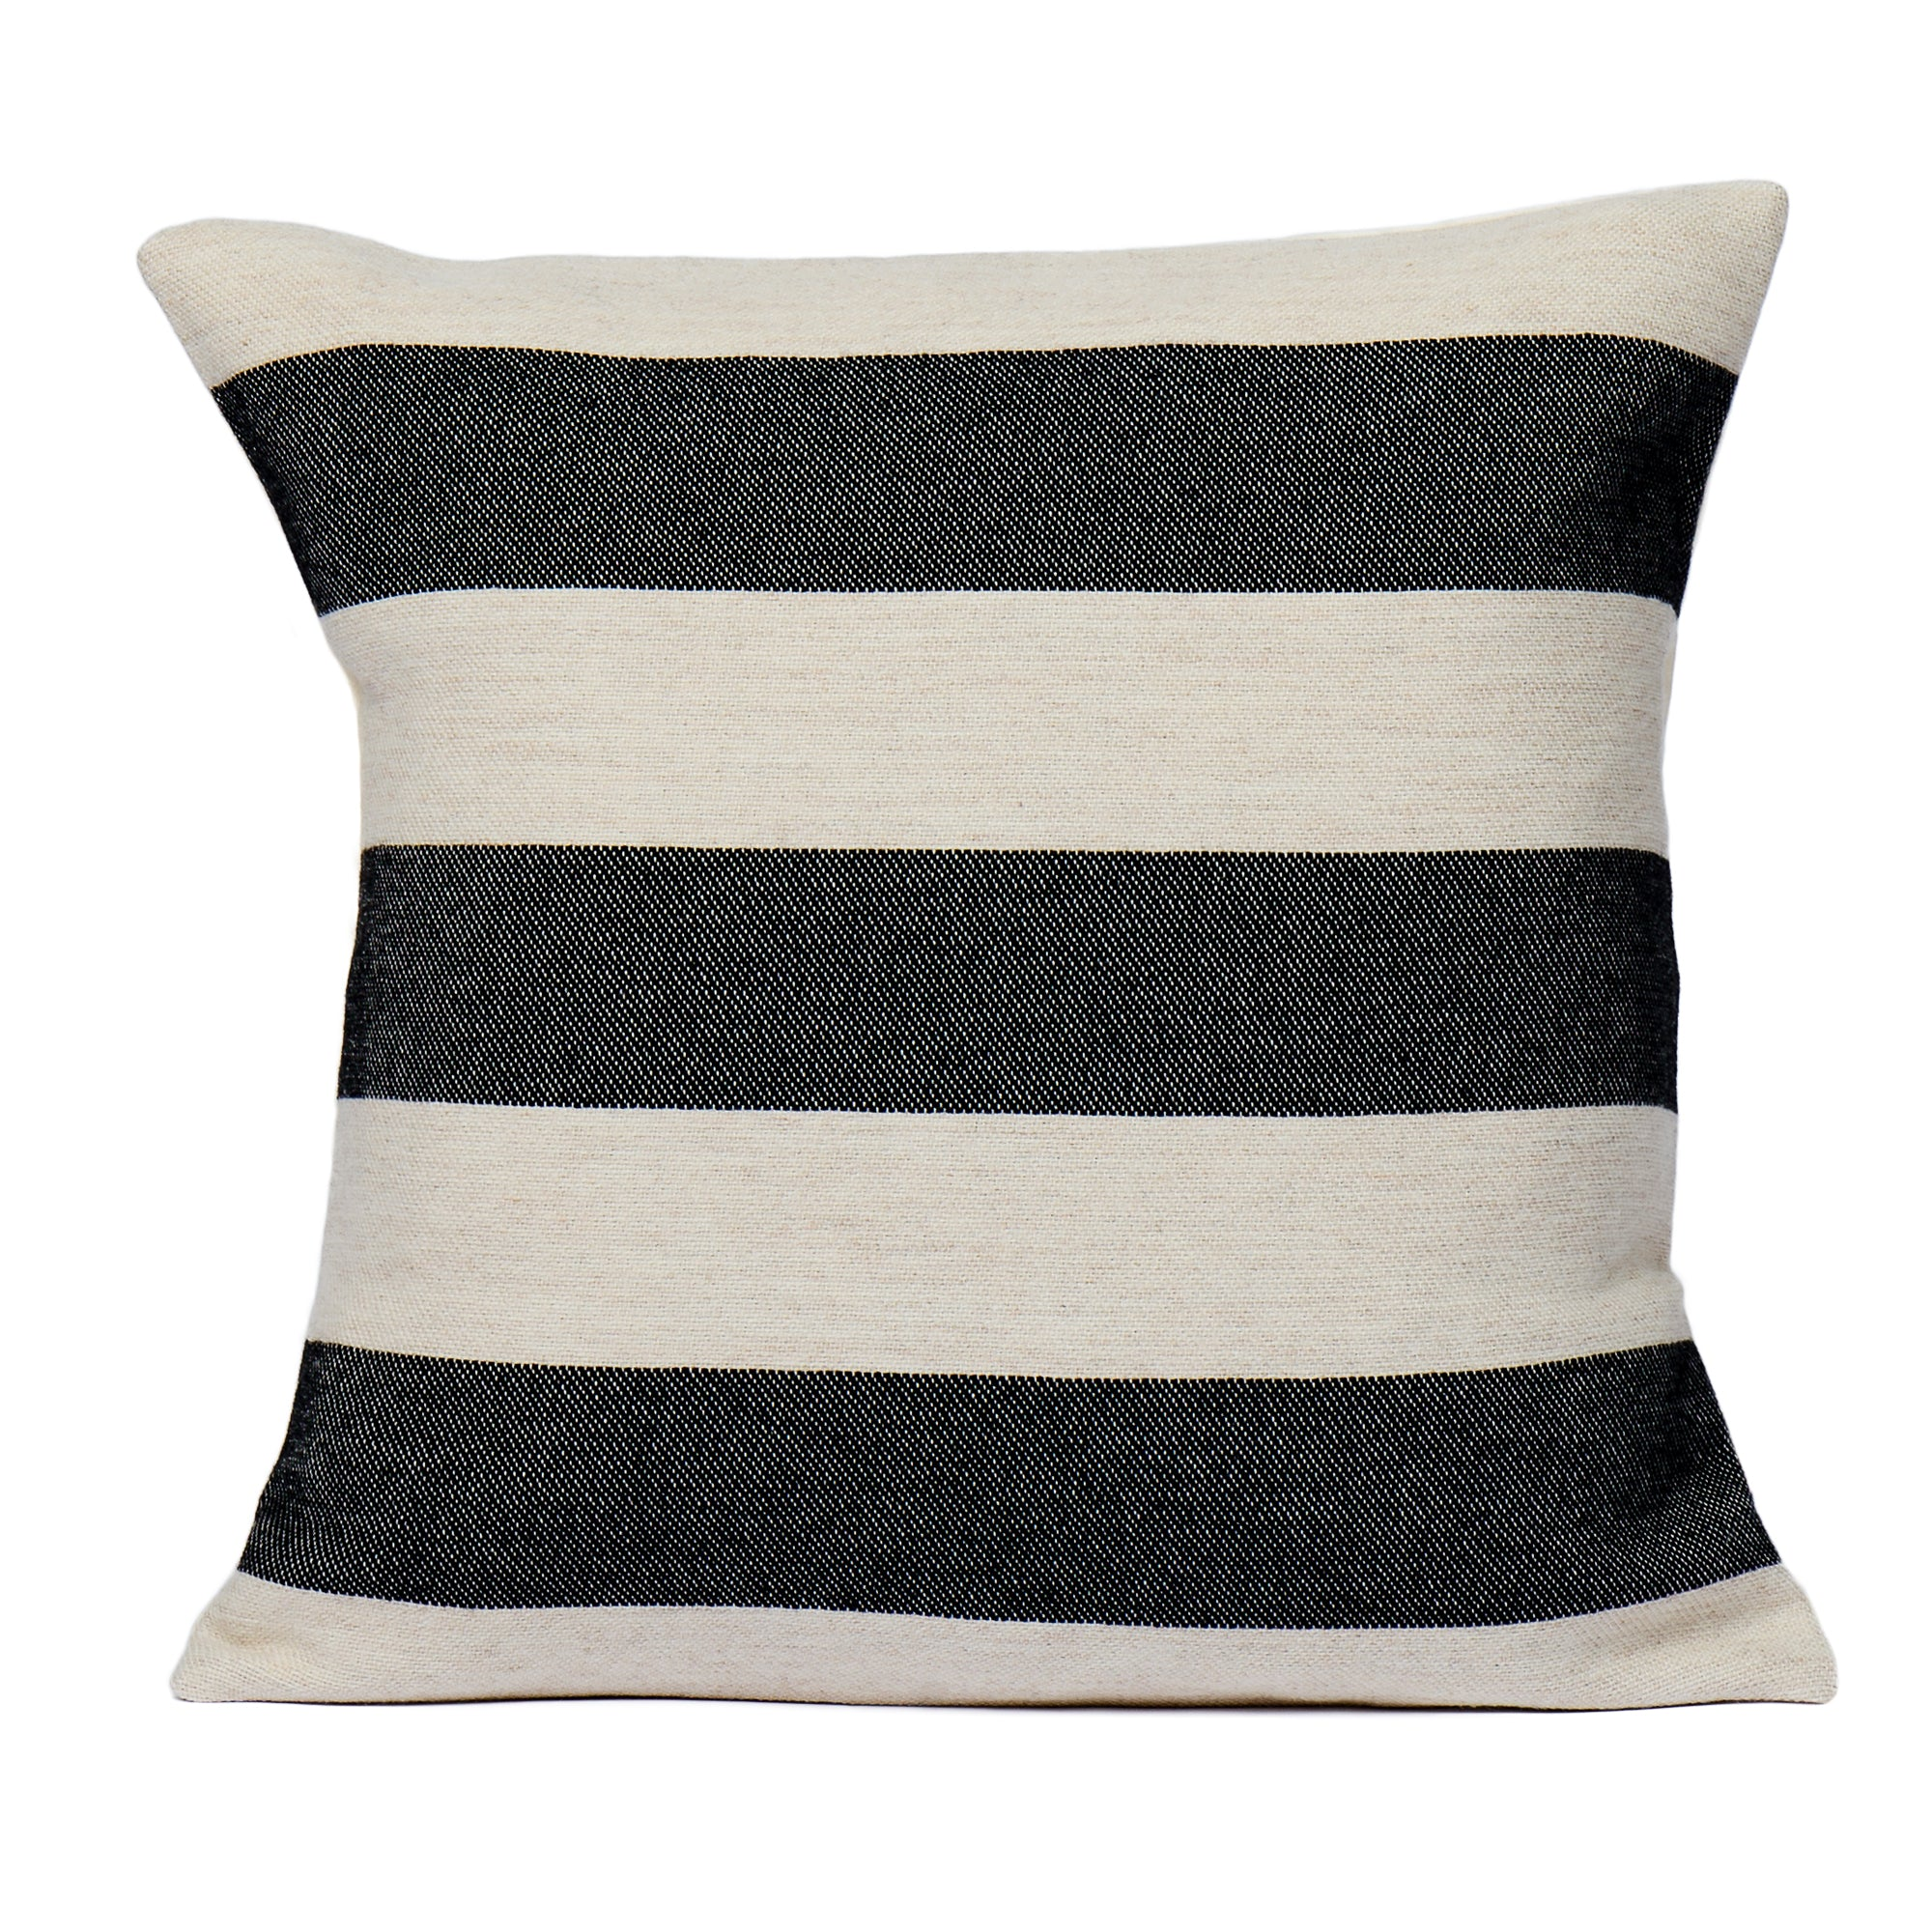 Fastnet Stripe Cushion Black